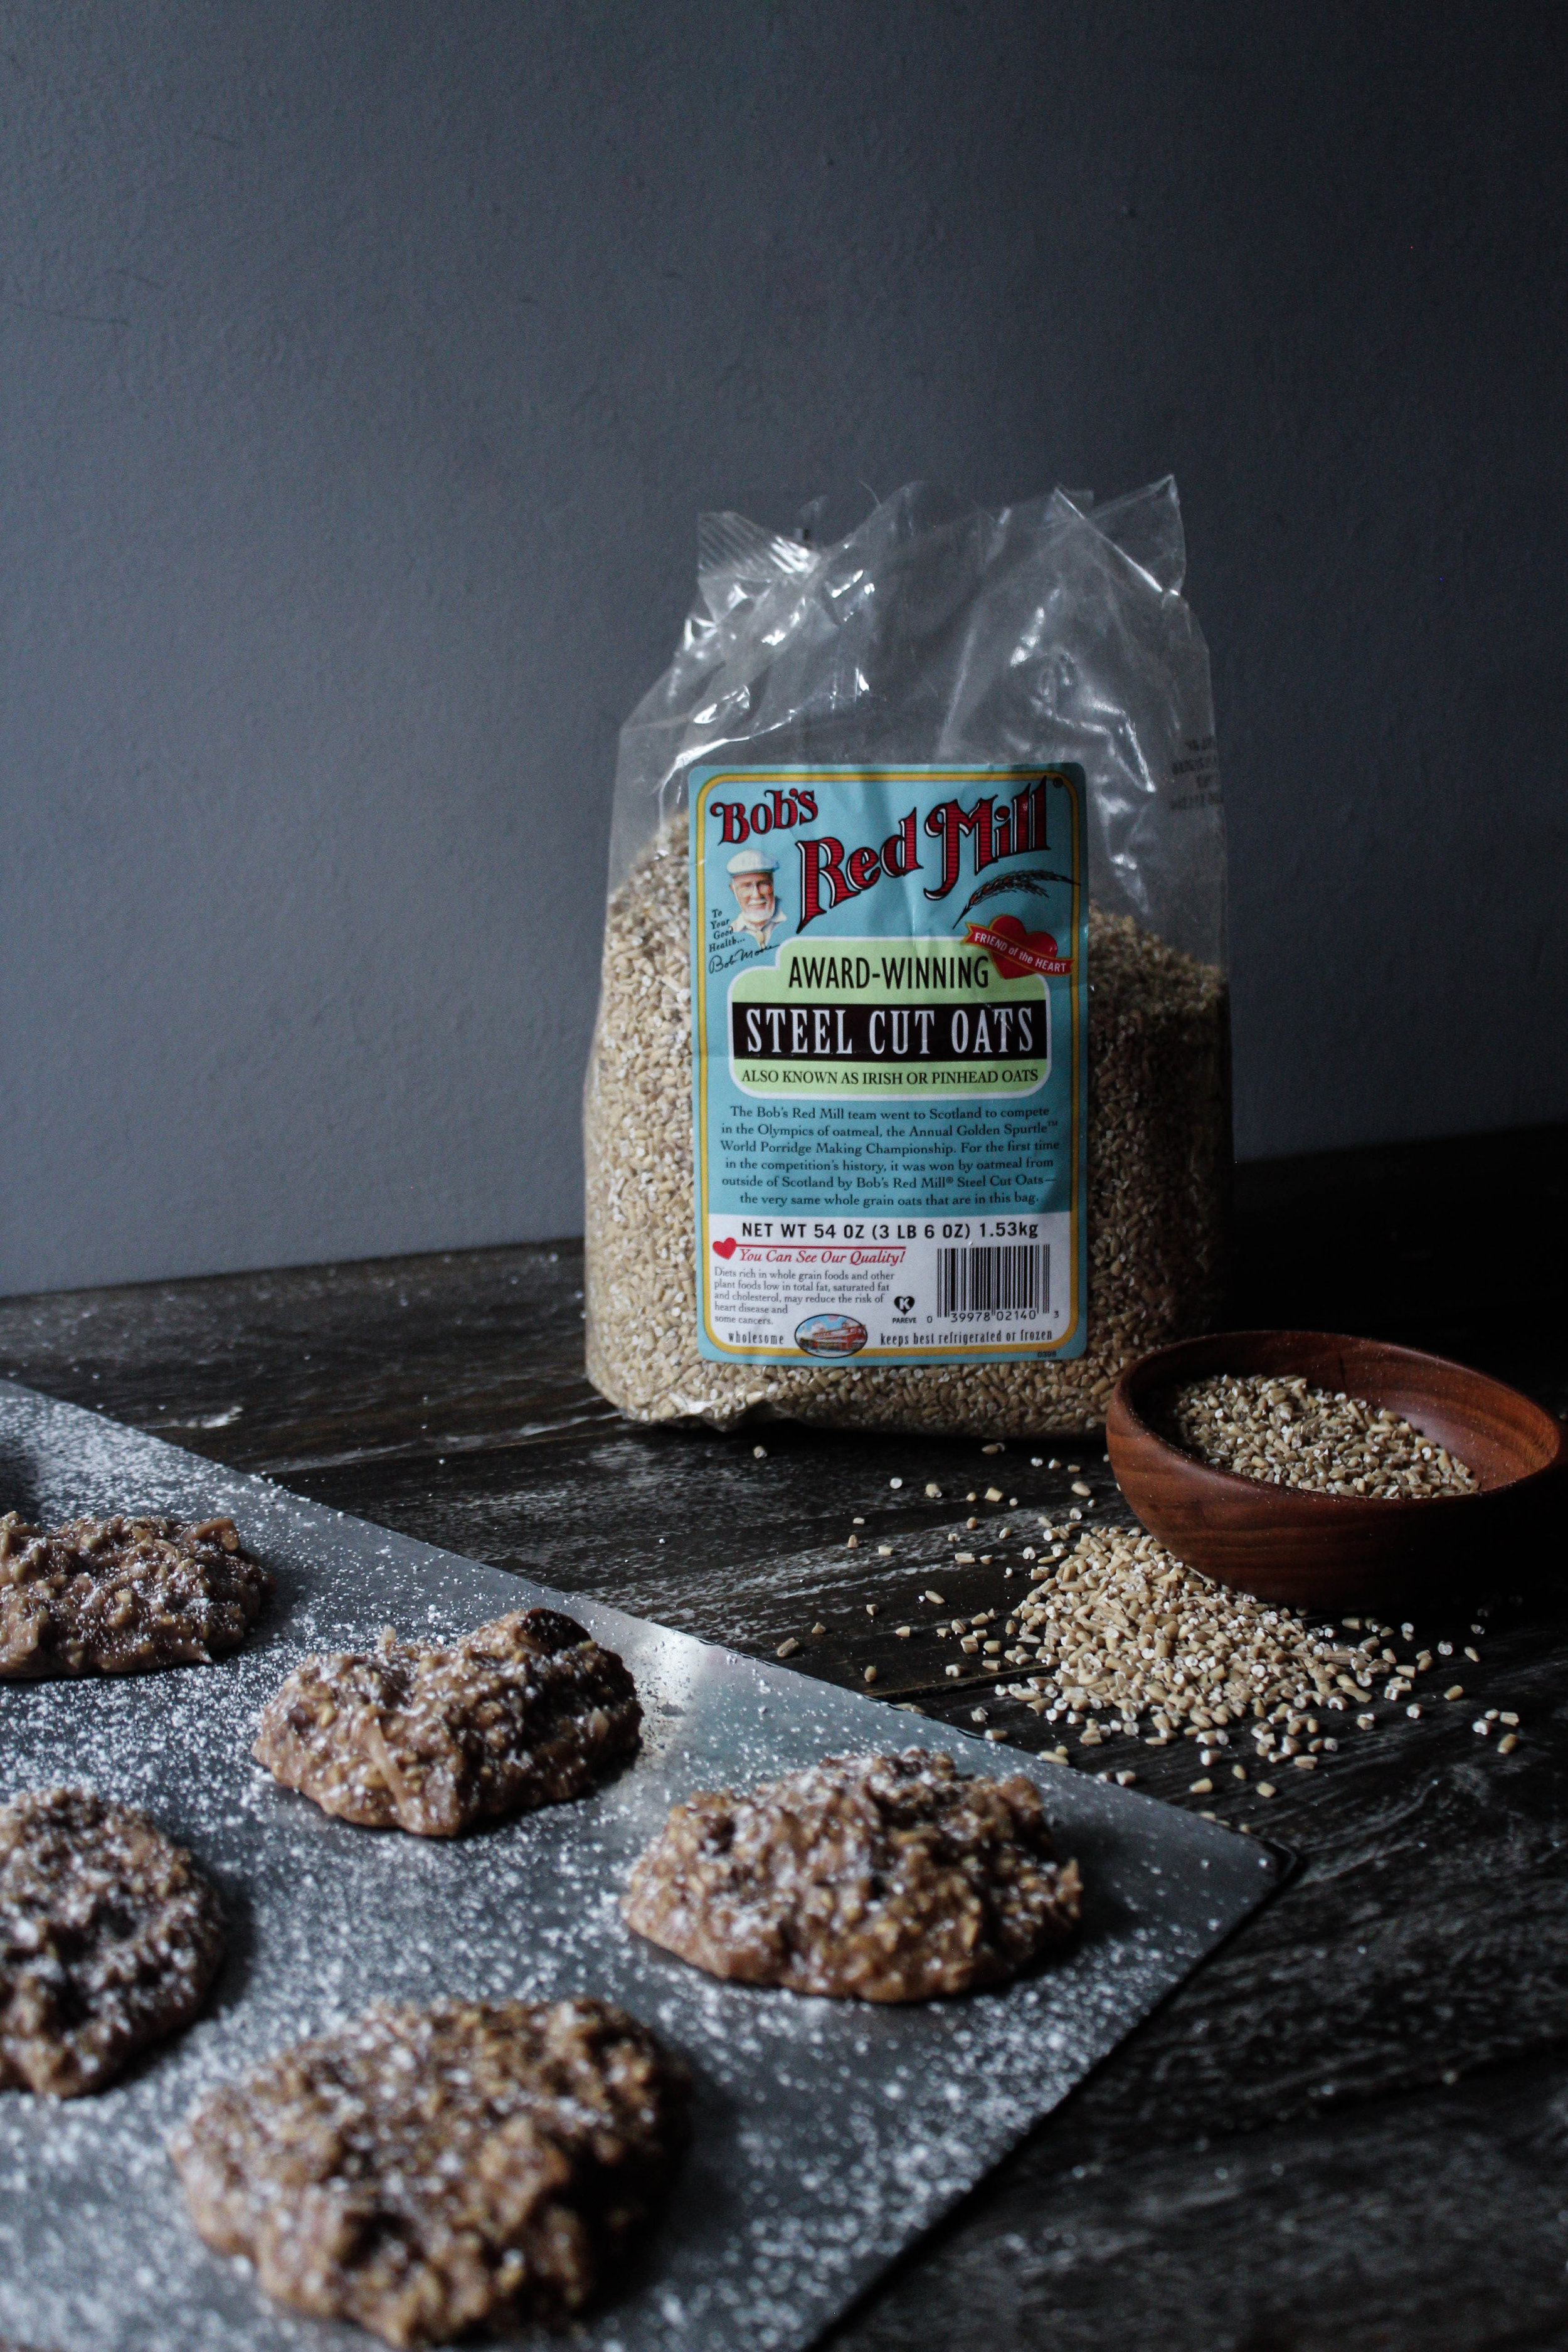 No Bake Cookies with Bob's Red Mill Steel Cut Oats